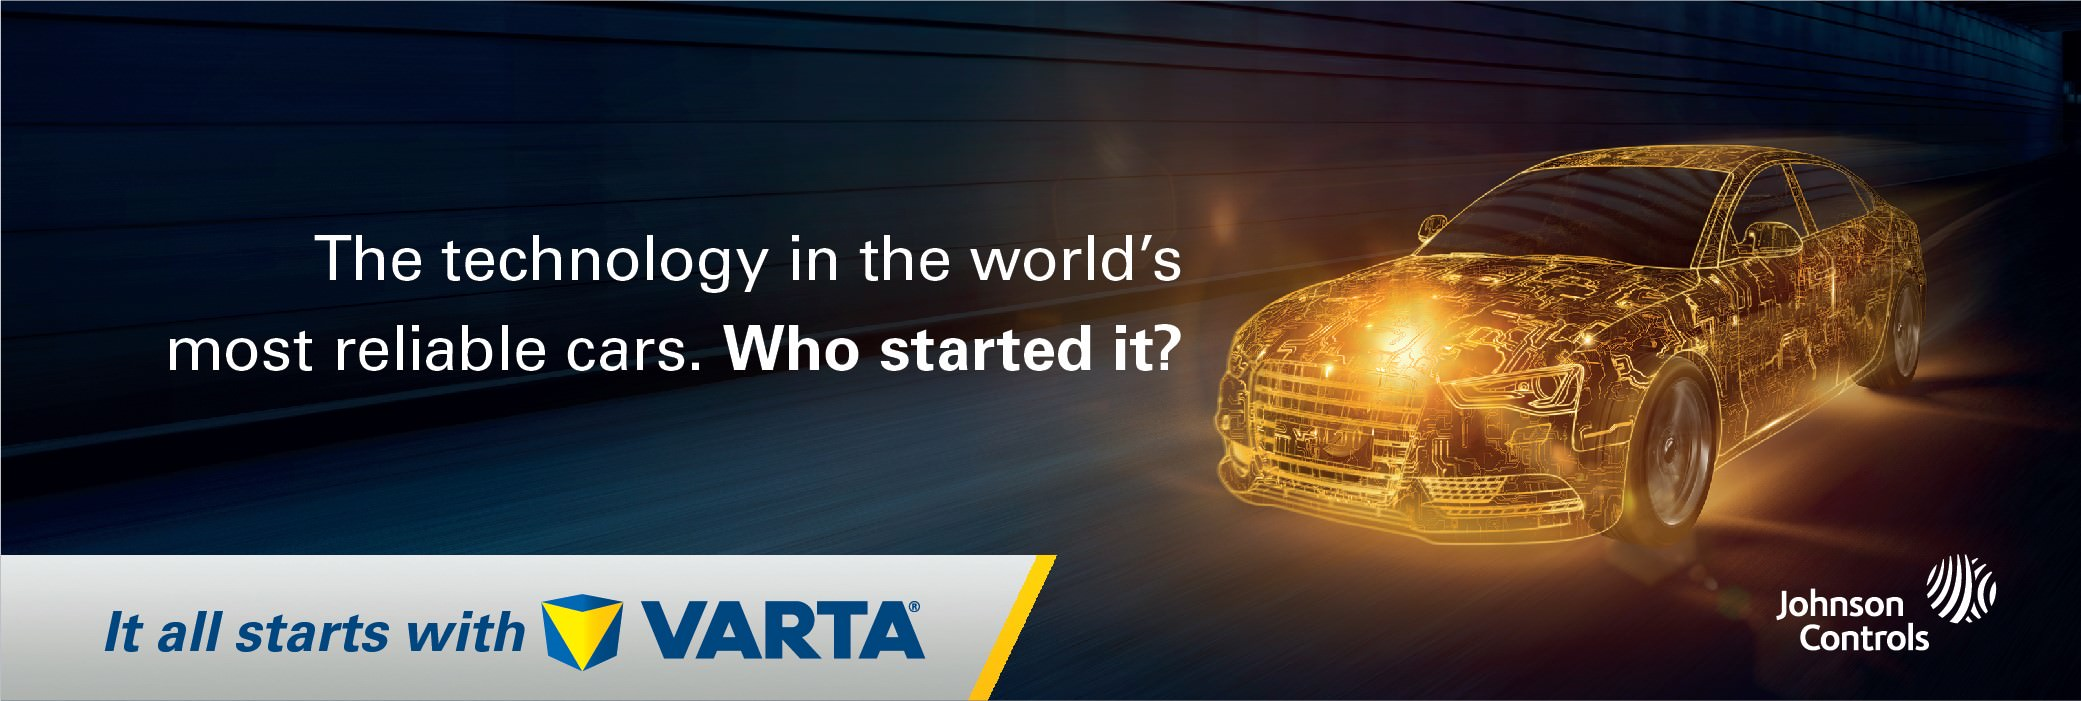 5e217fcb884 The technology in the world's most reliable cars. Who started it?